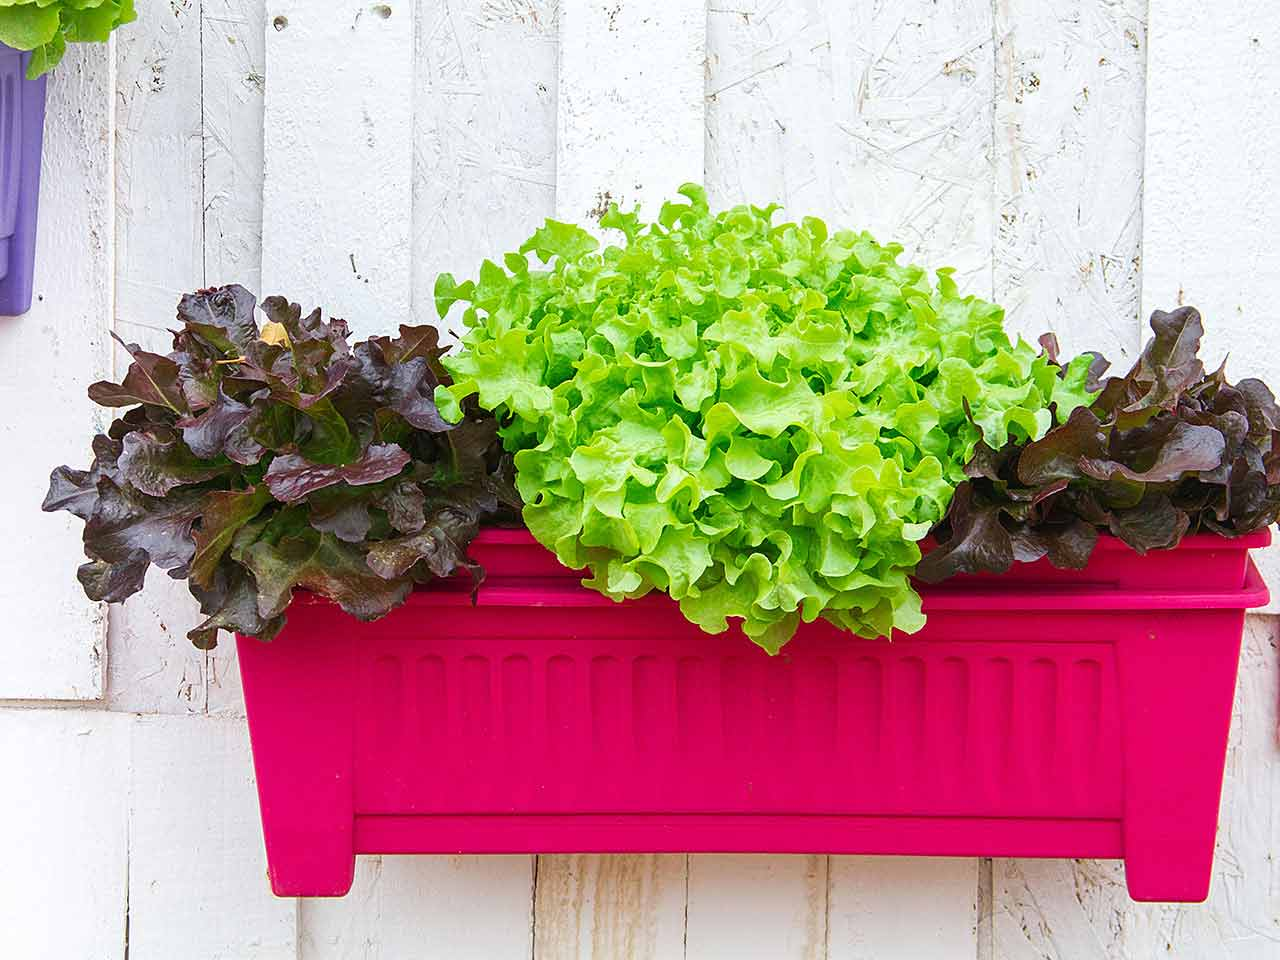 Mixed salad leaves growing in large box